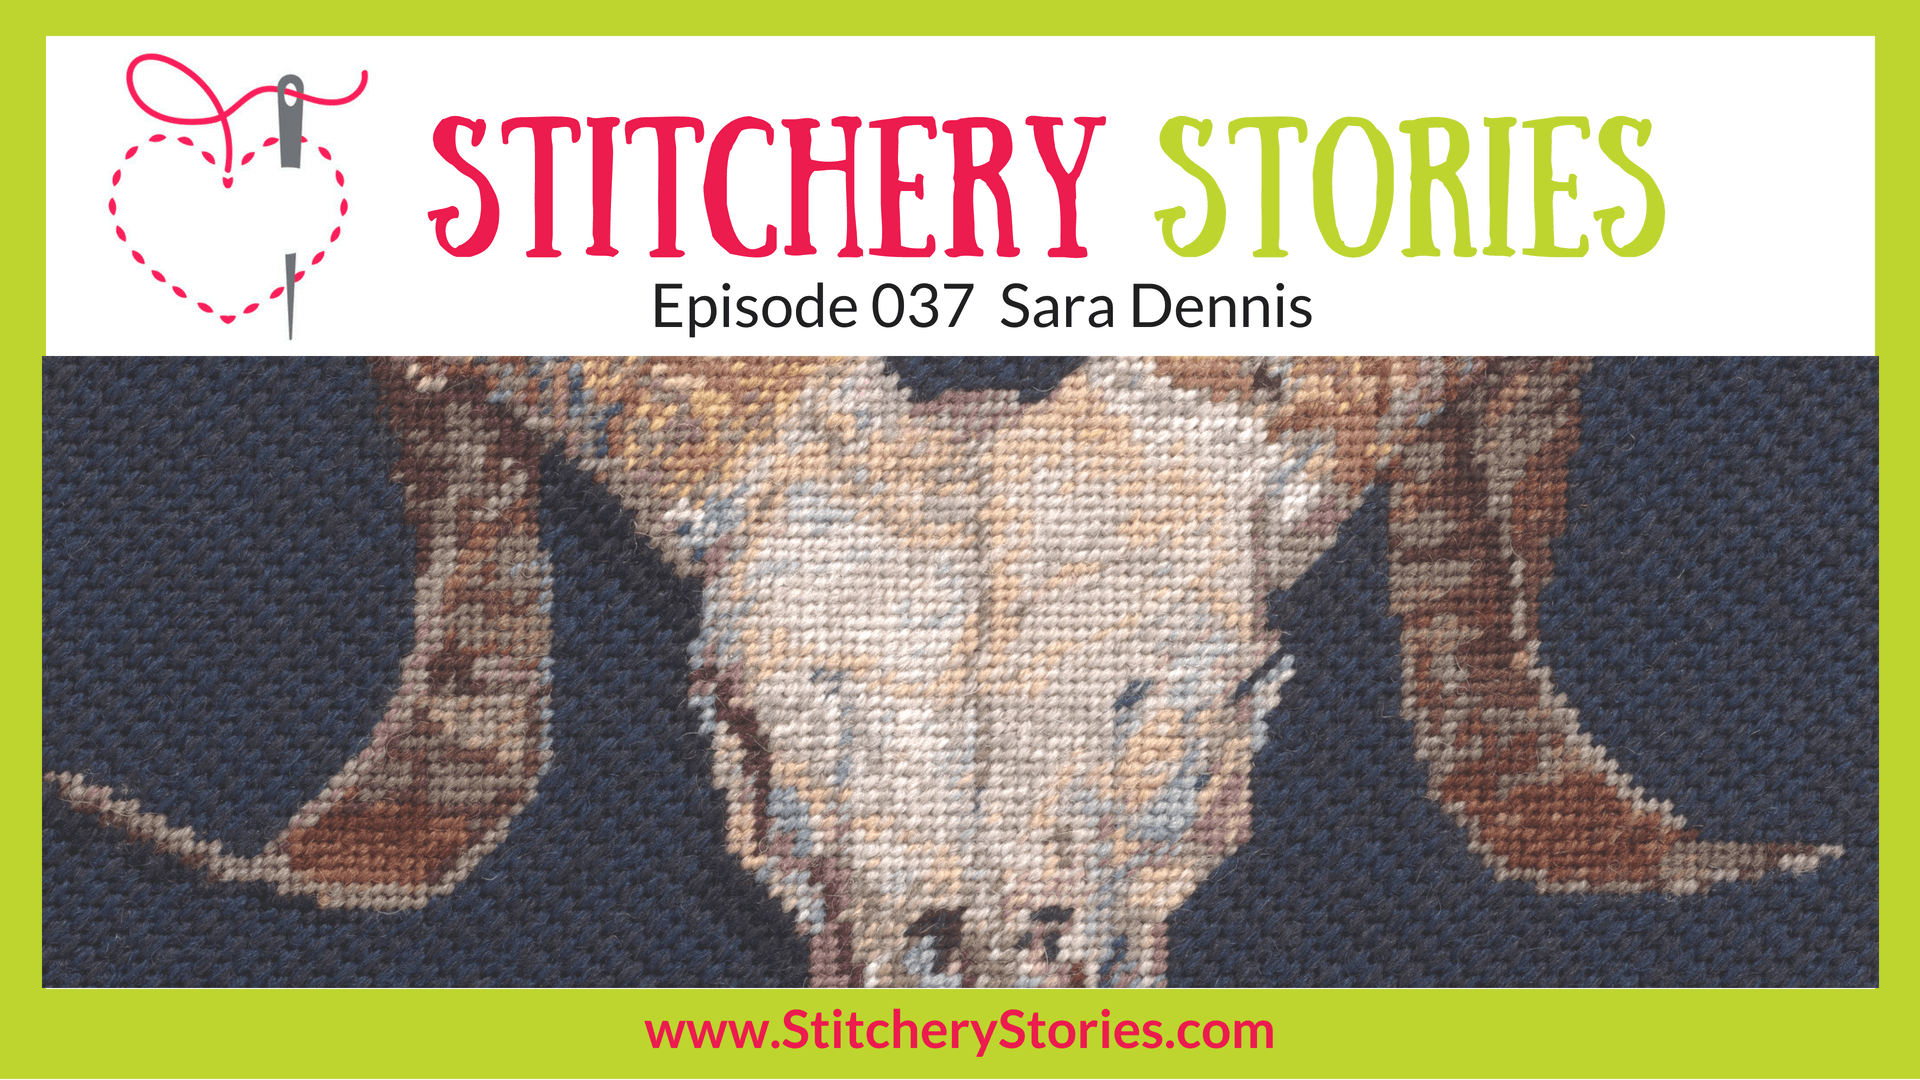 Sara Dennis Hand Embroidery Tutor Stitchery Stories Textile Art Podcast Wide Art